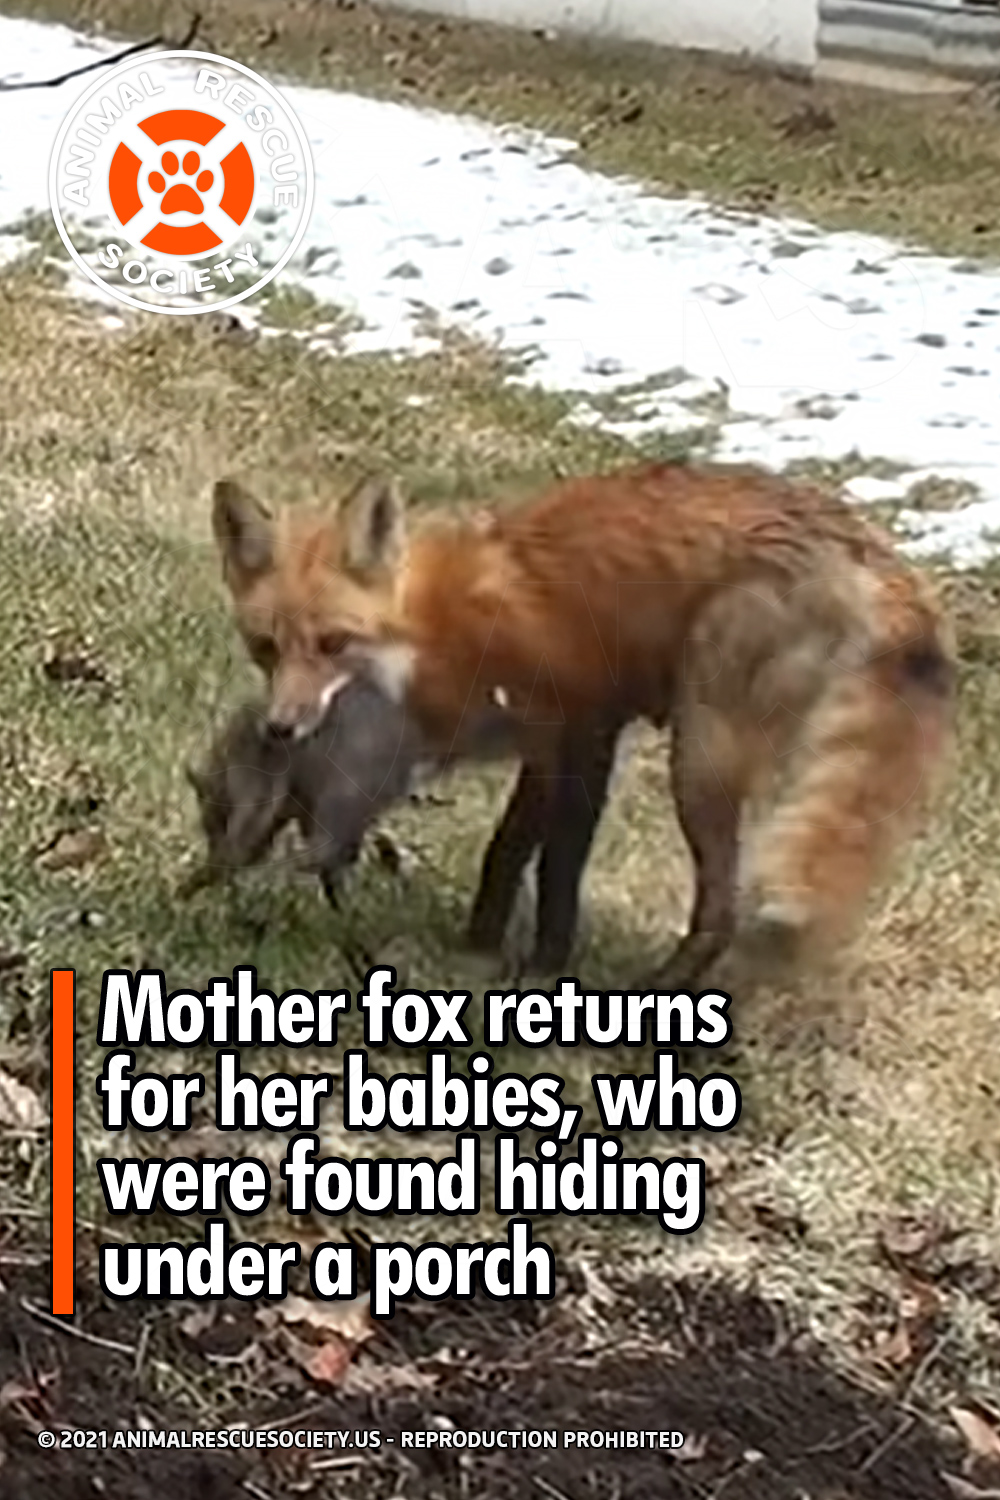 Mother fox returns for her babies, who were found hiding under a porch